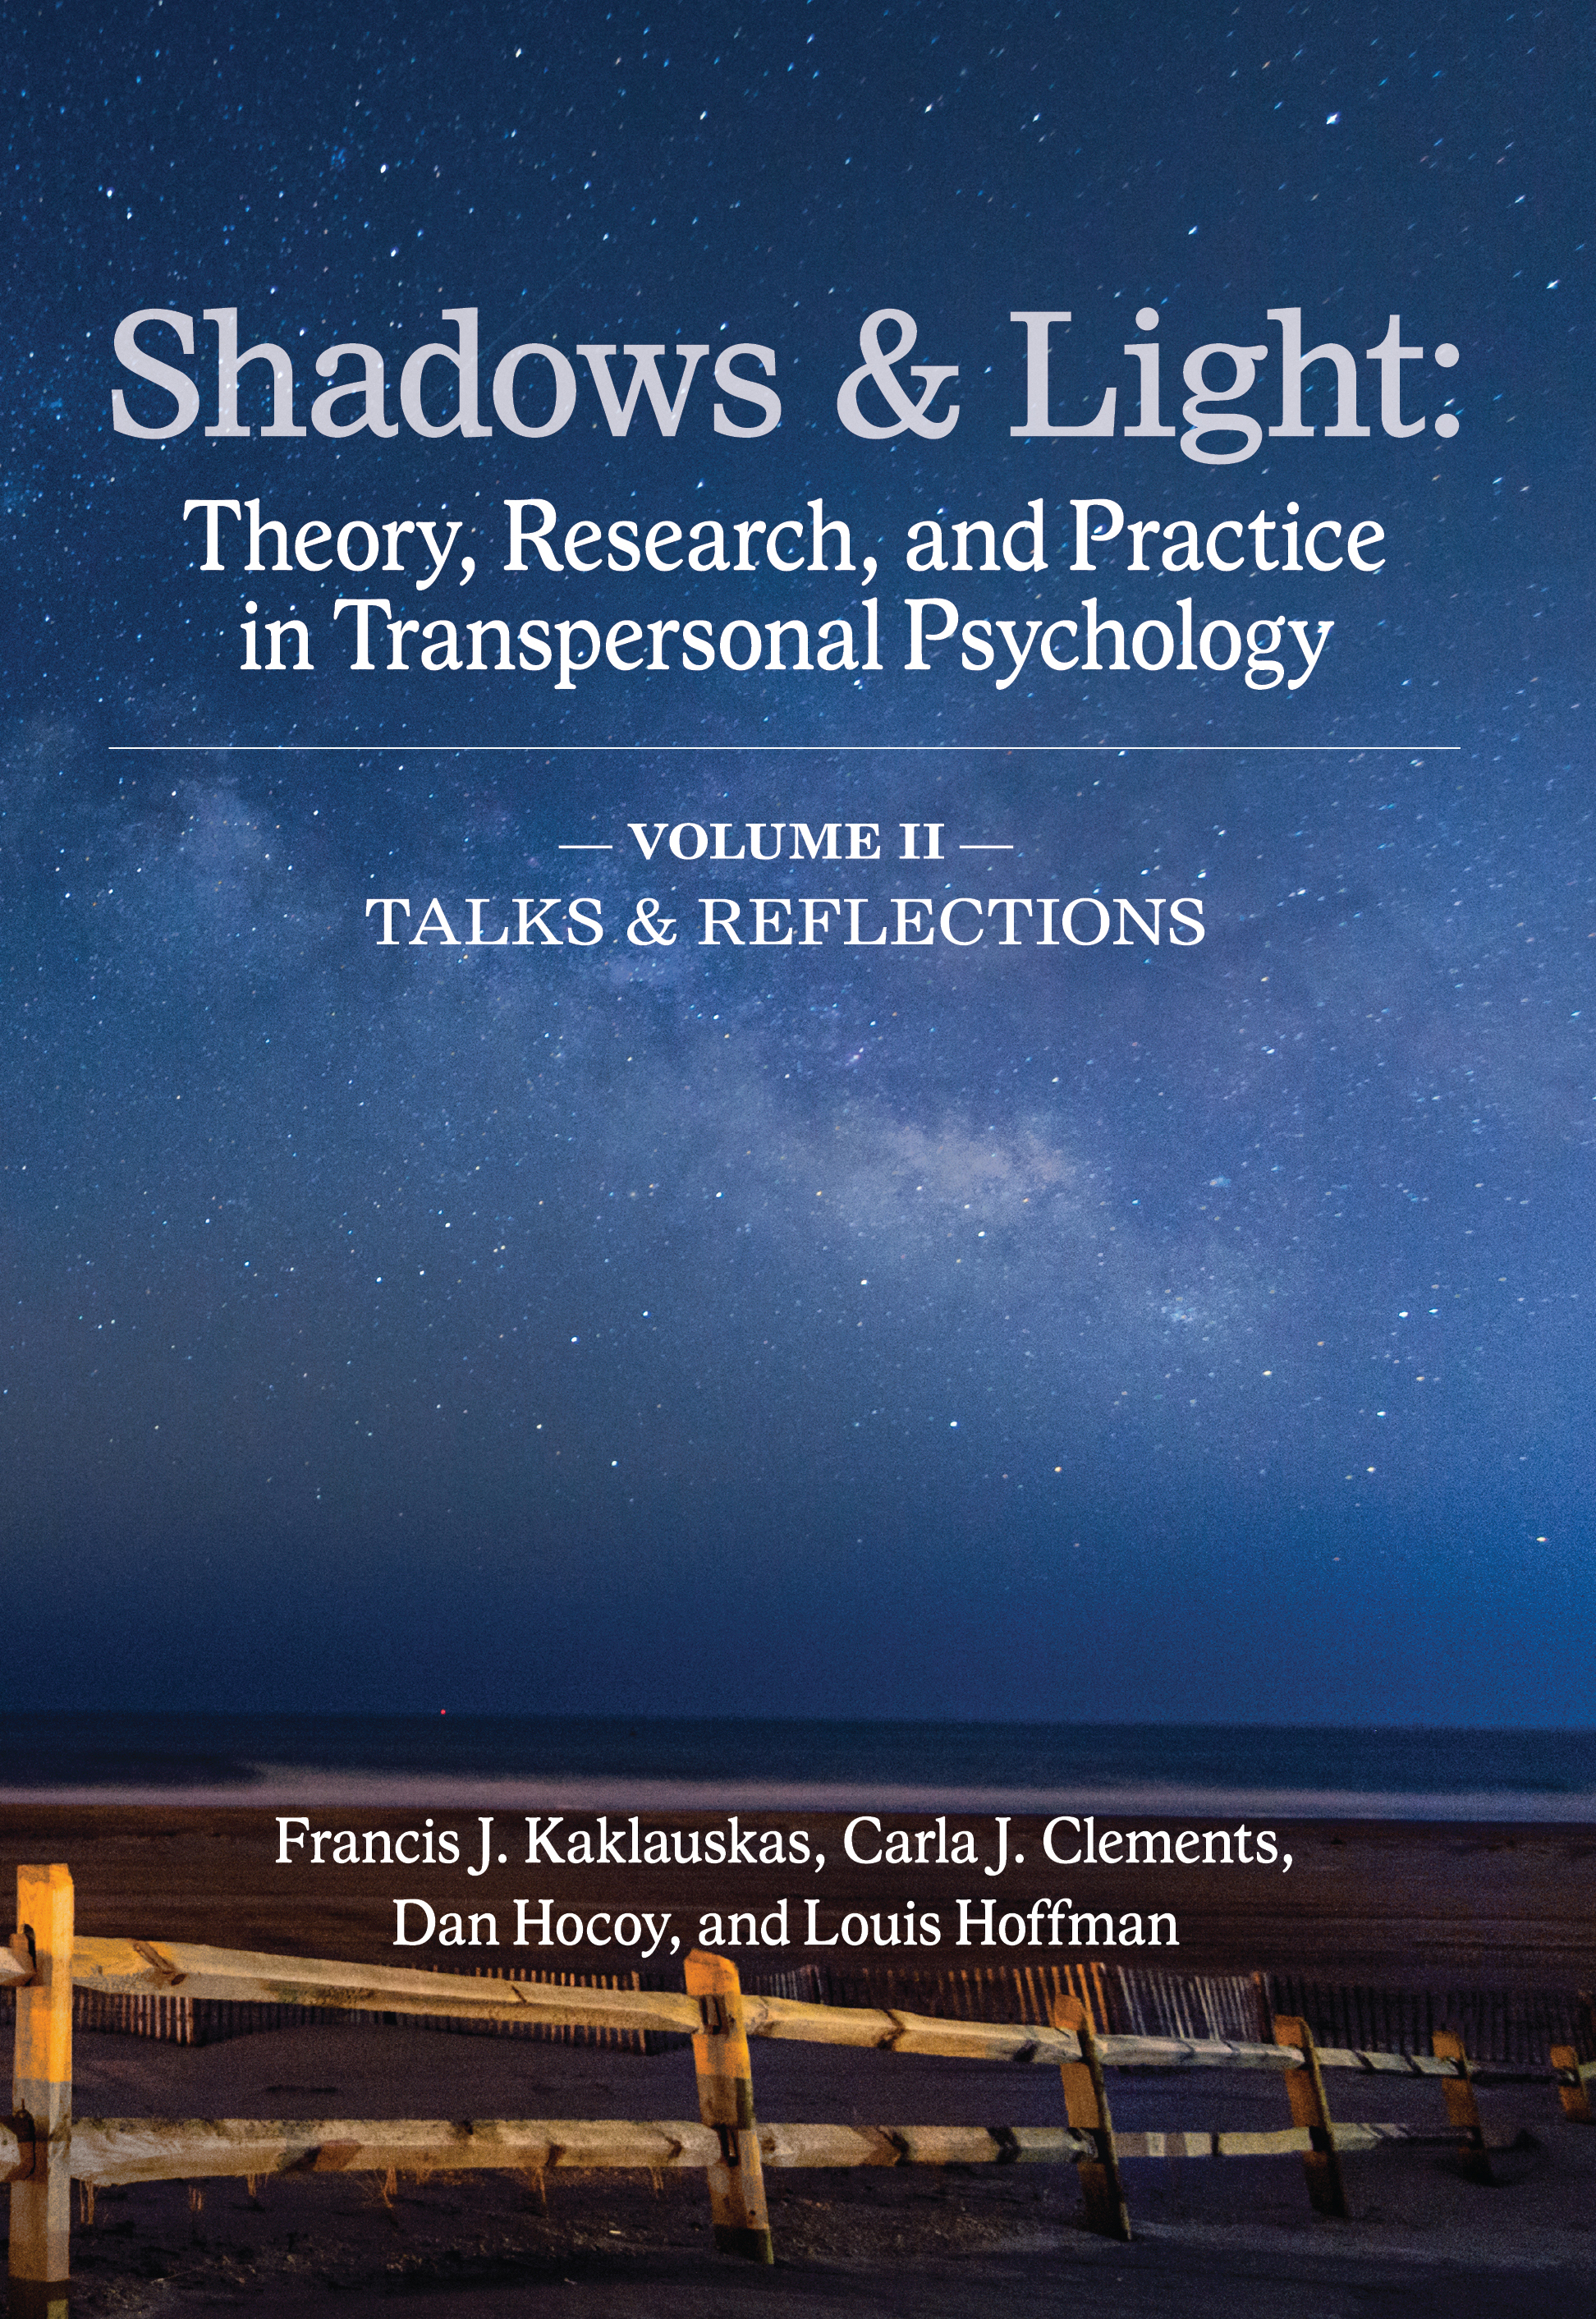 Shadows & Light Volume 2